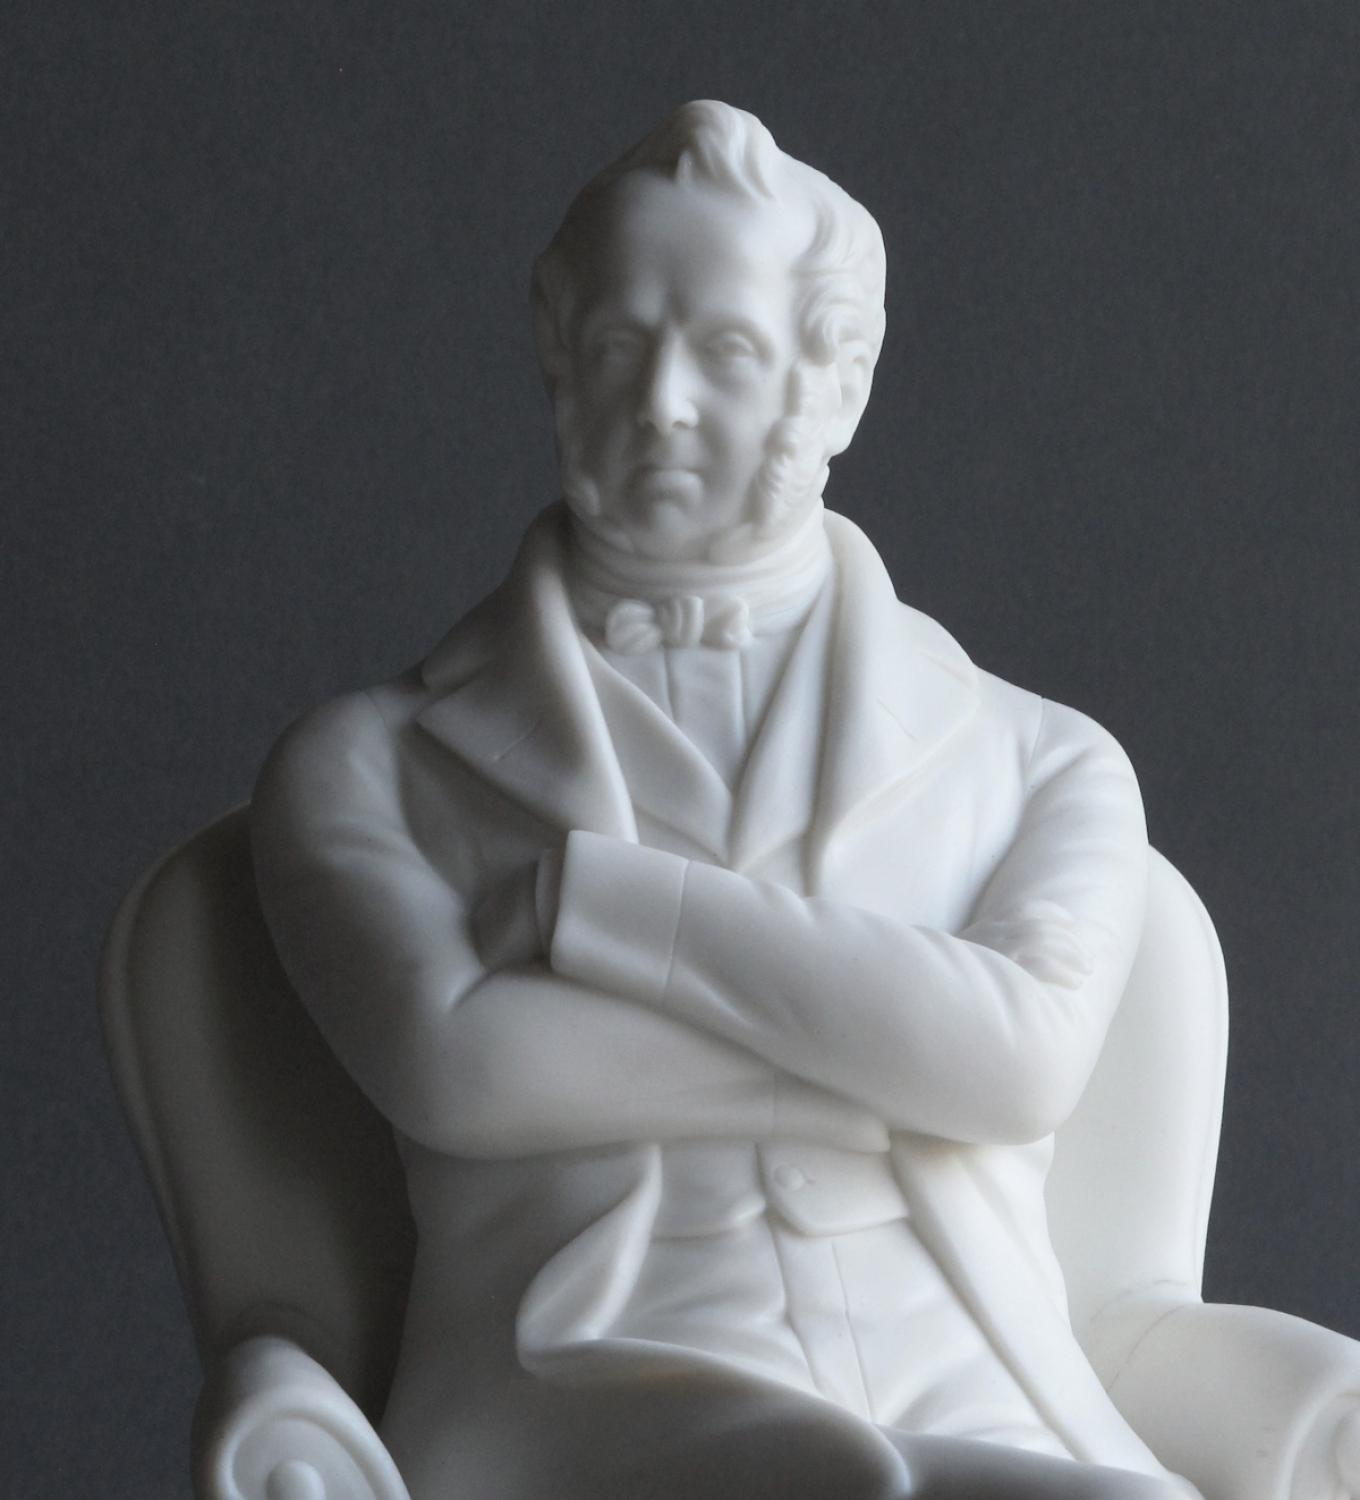 A Minton Parian figure of Lord Palmerston